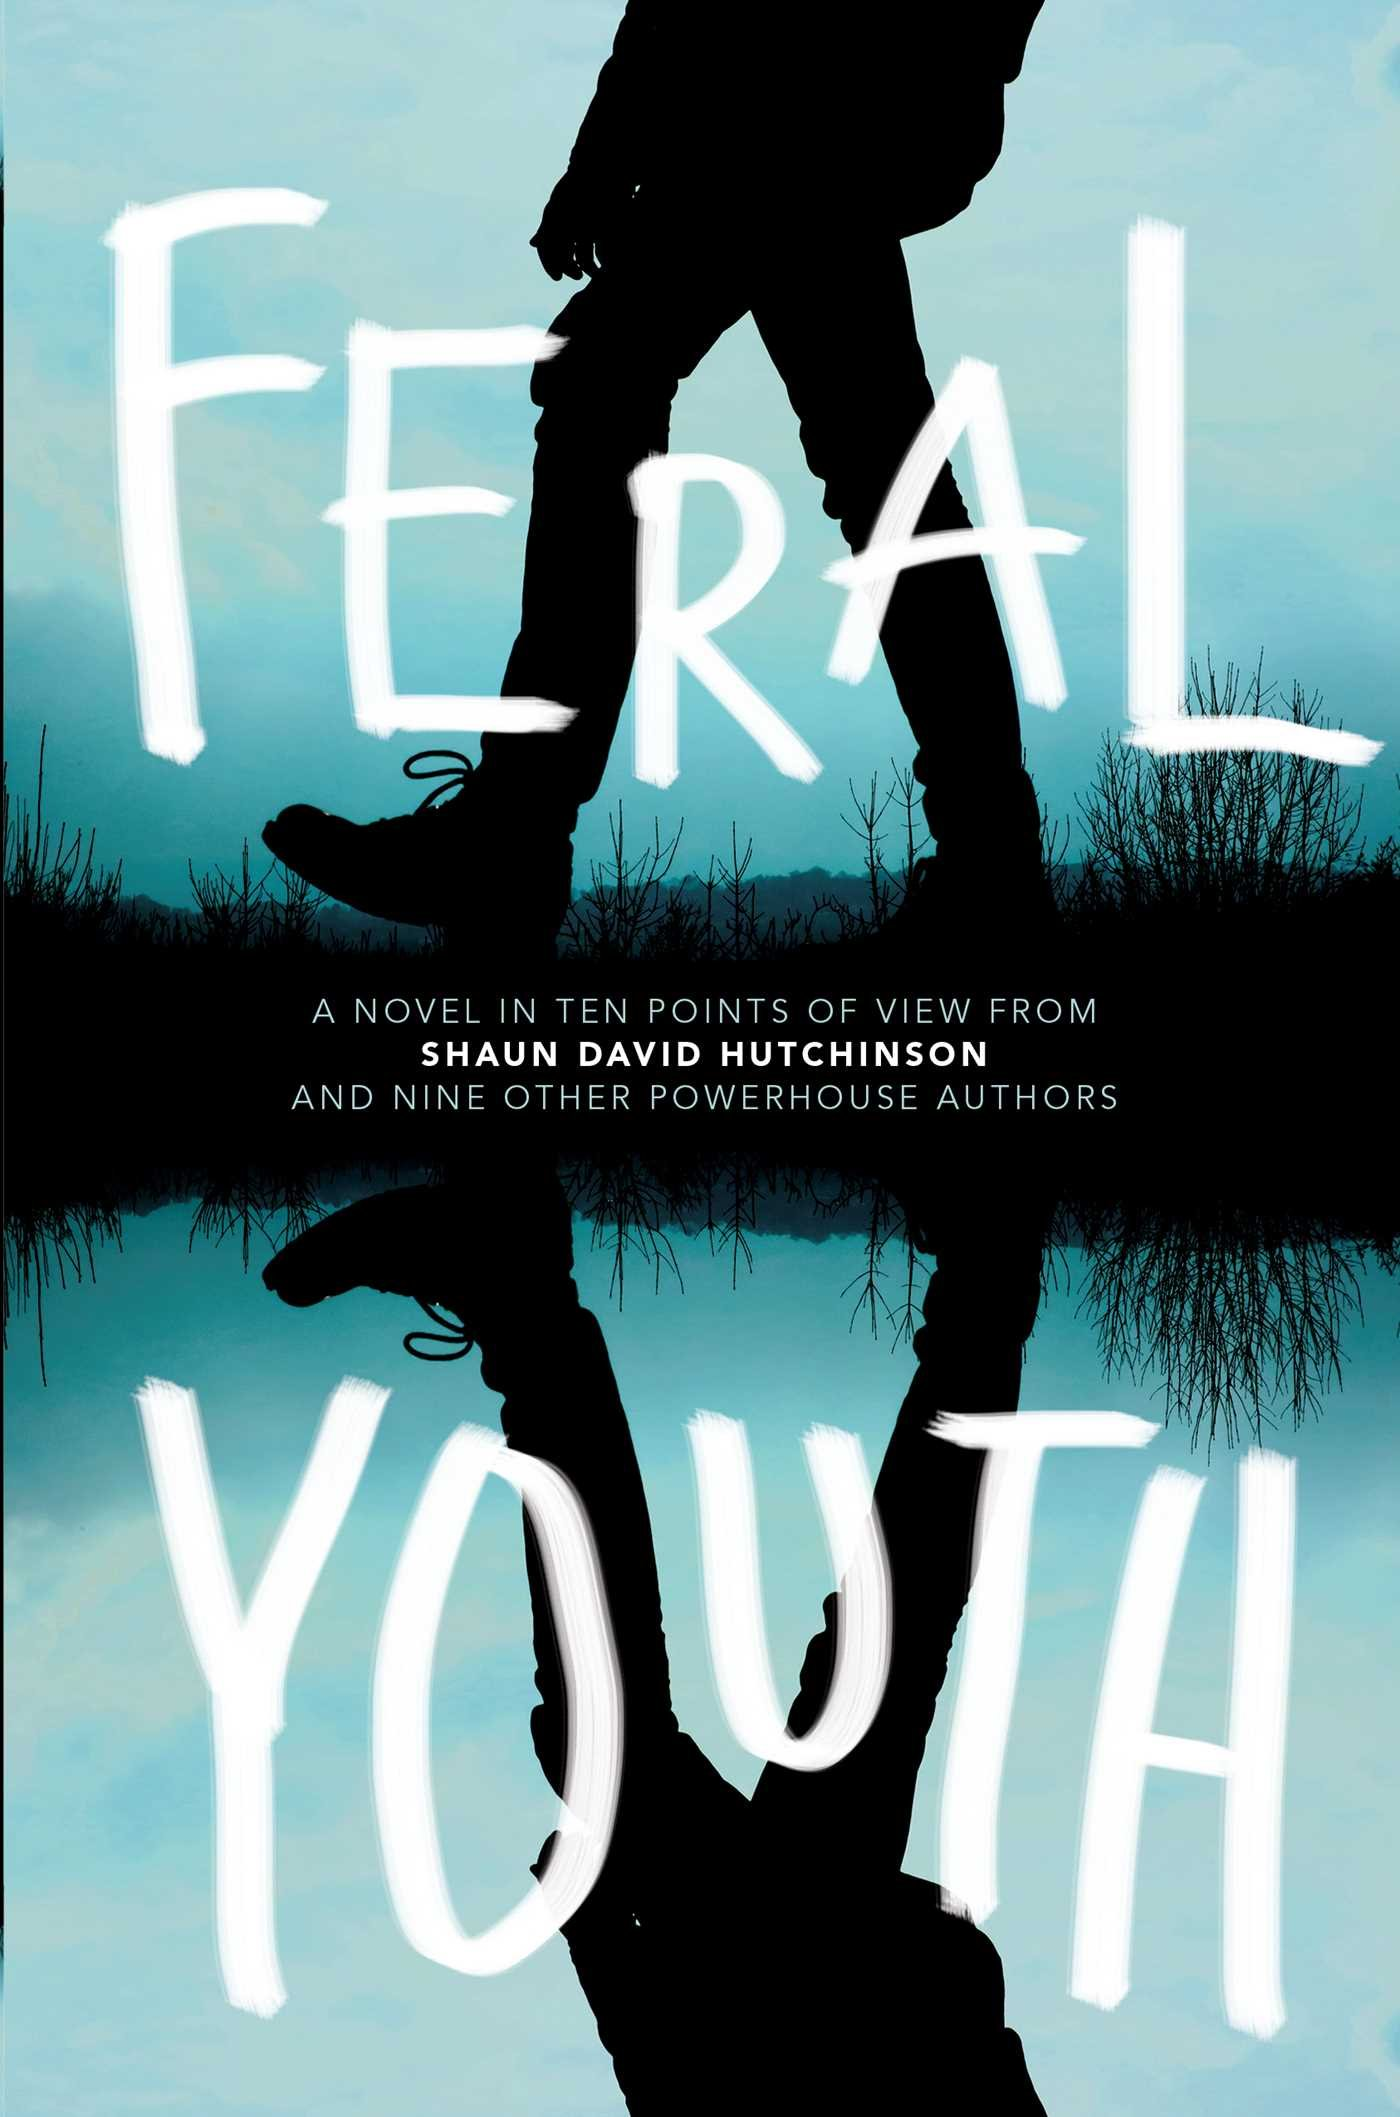 Image result for feral youth